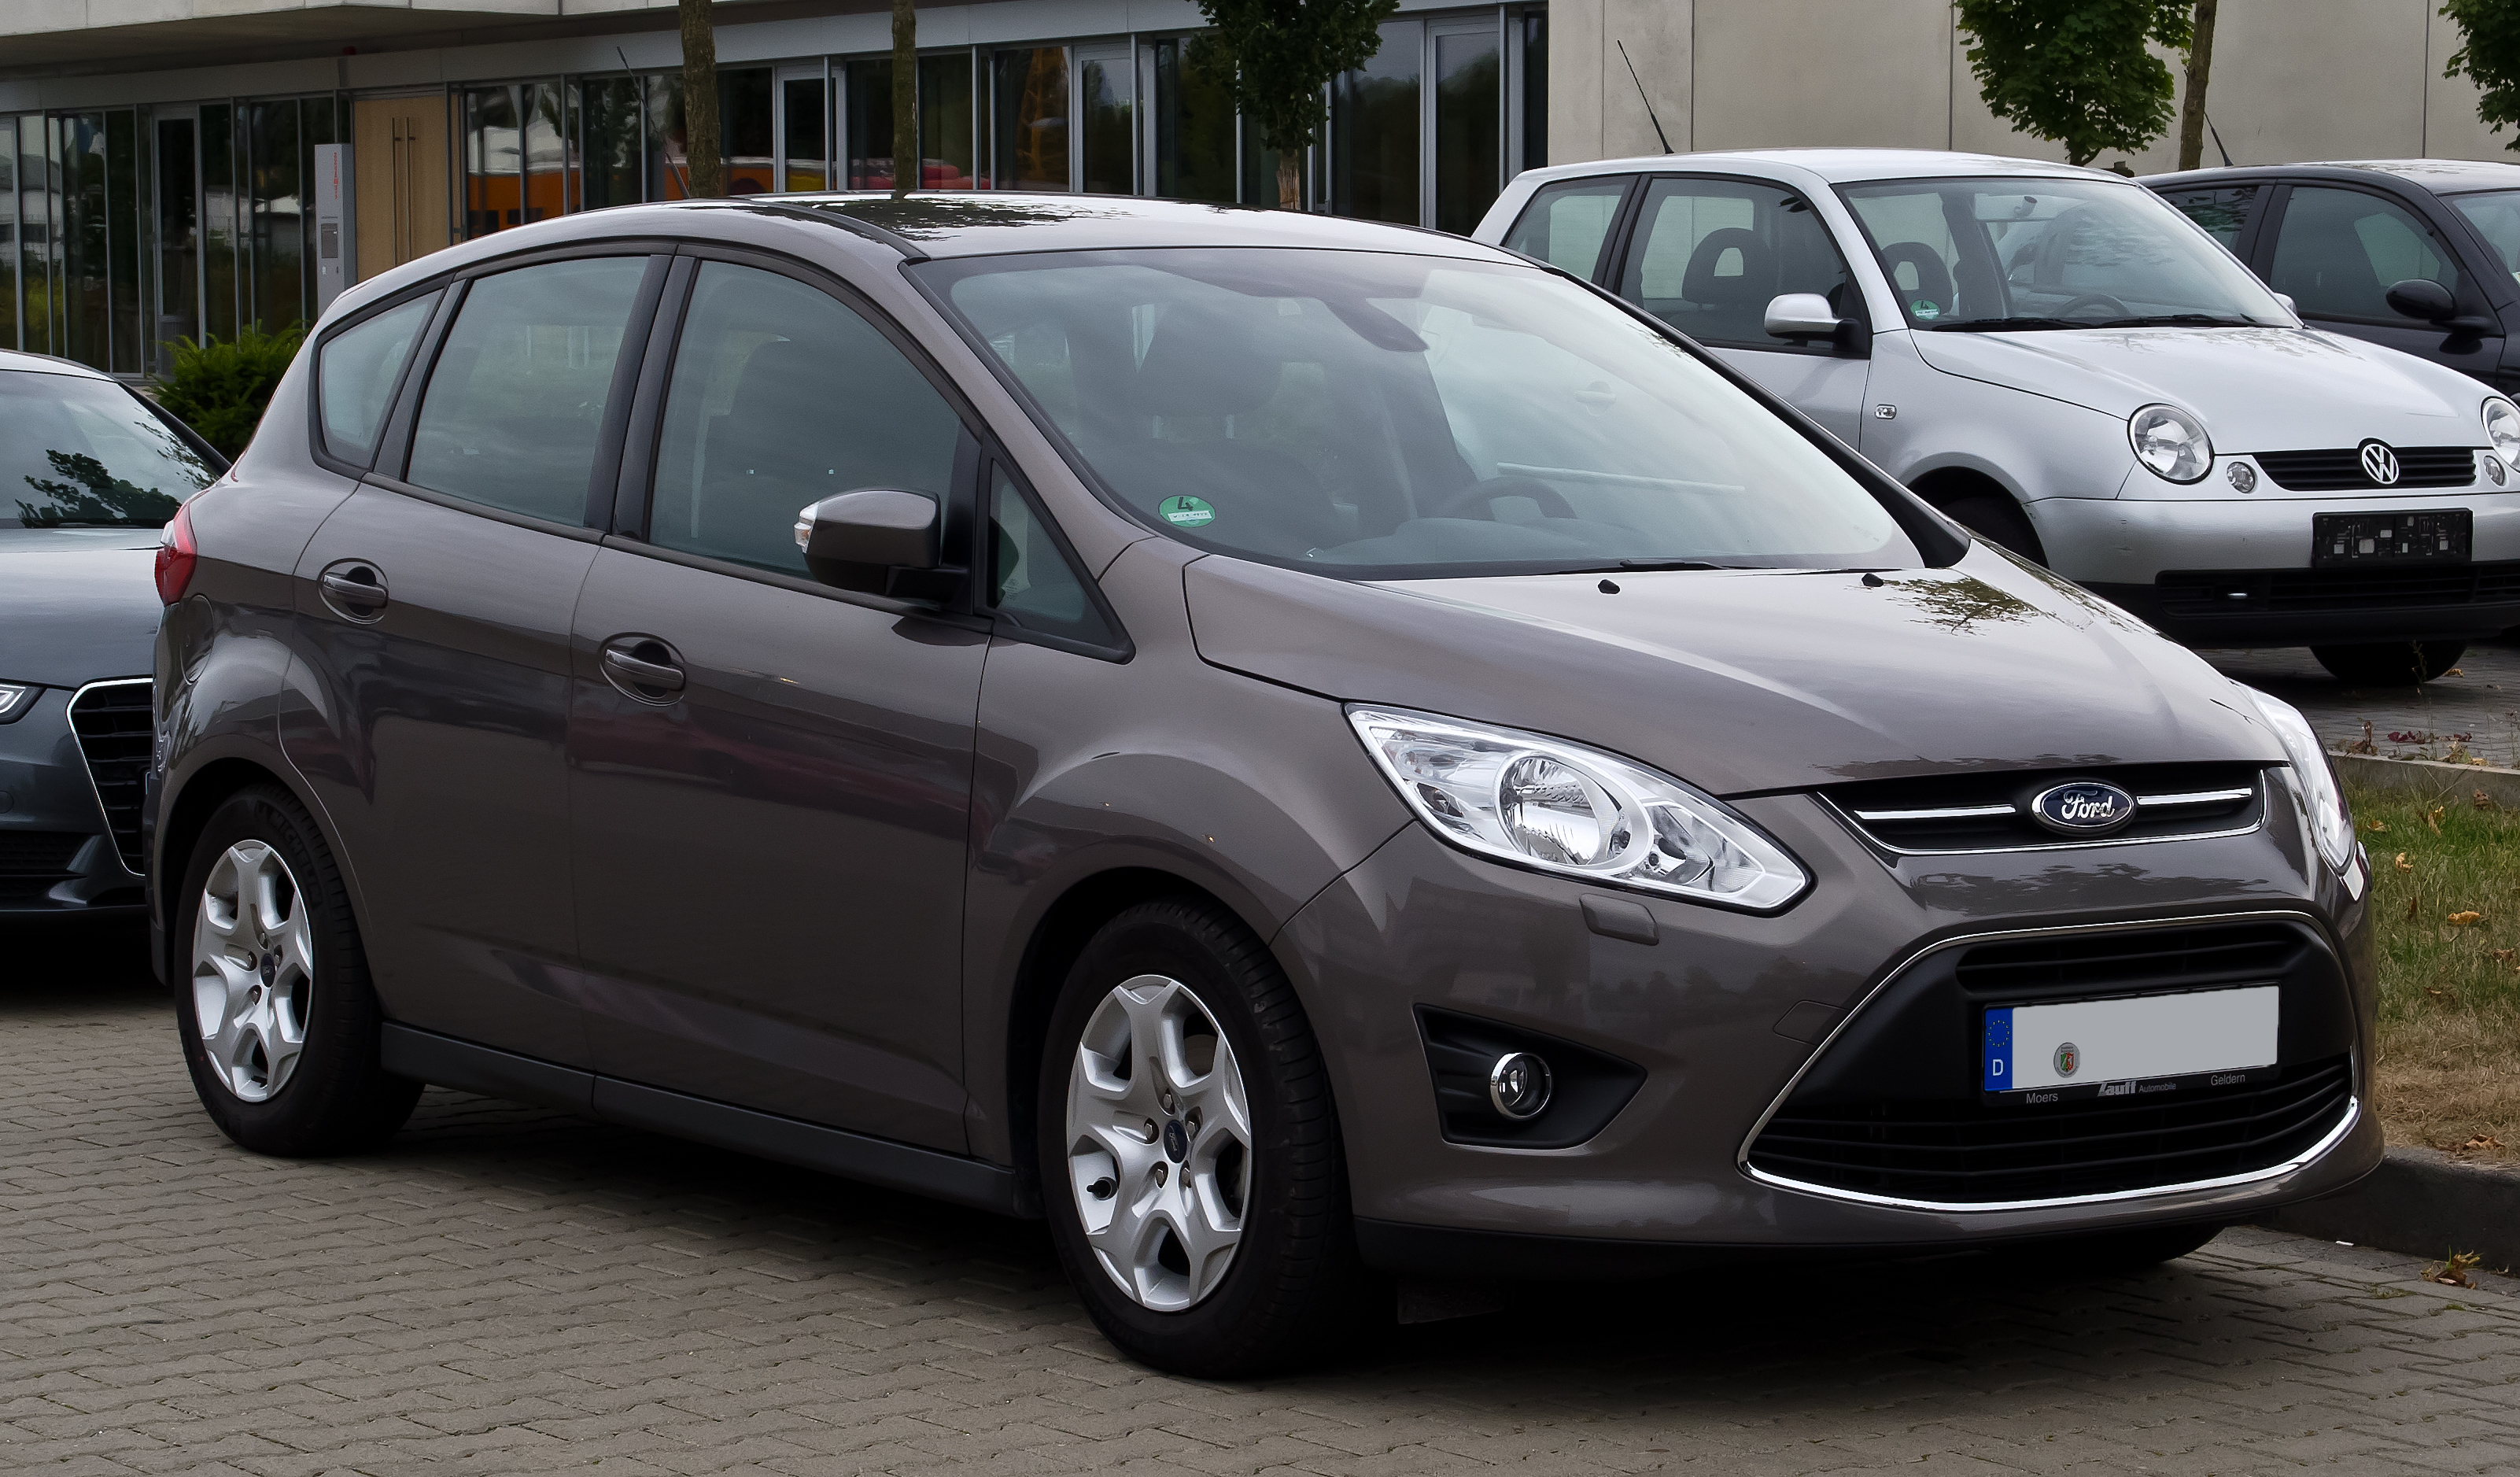 ford c-max wallpaper #11